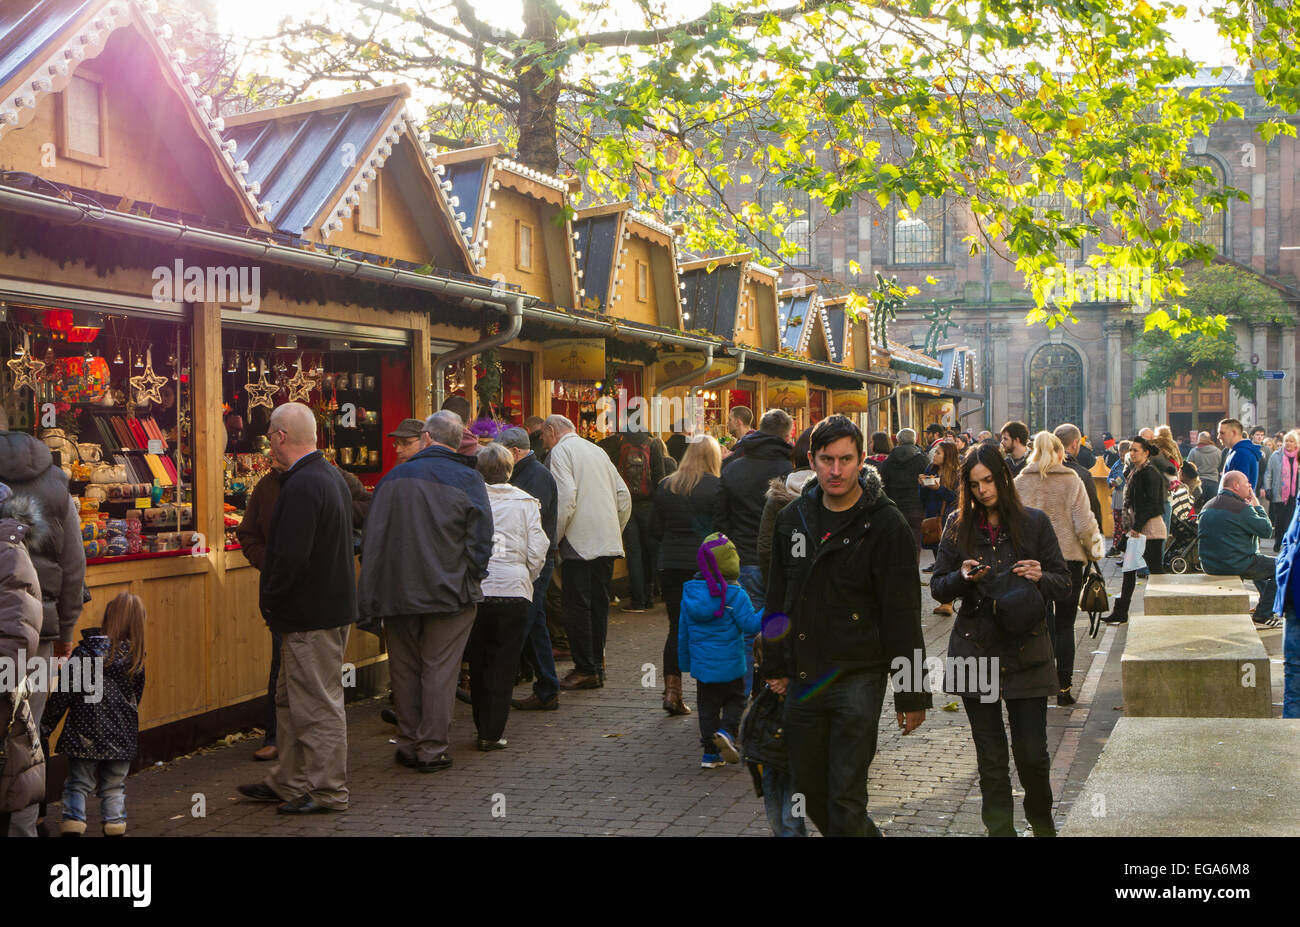 Shoppers at the Christmas Markets in Manchester - Stock Image